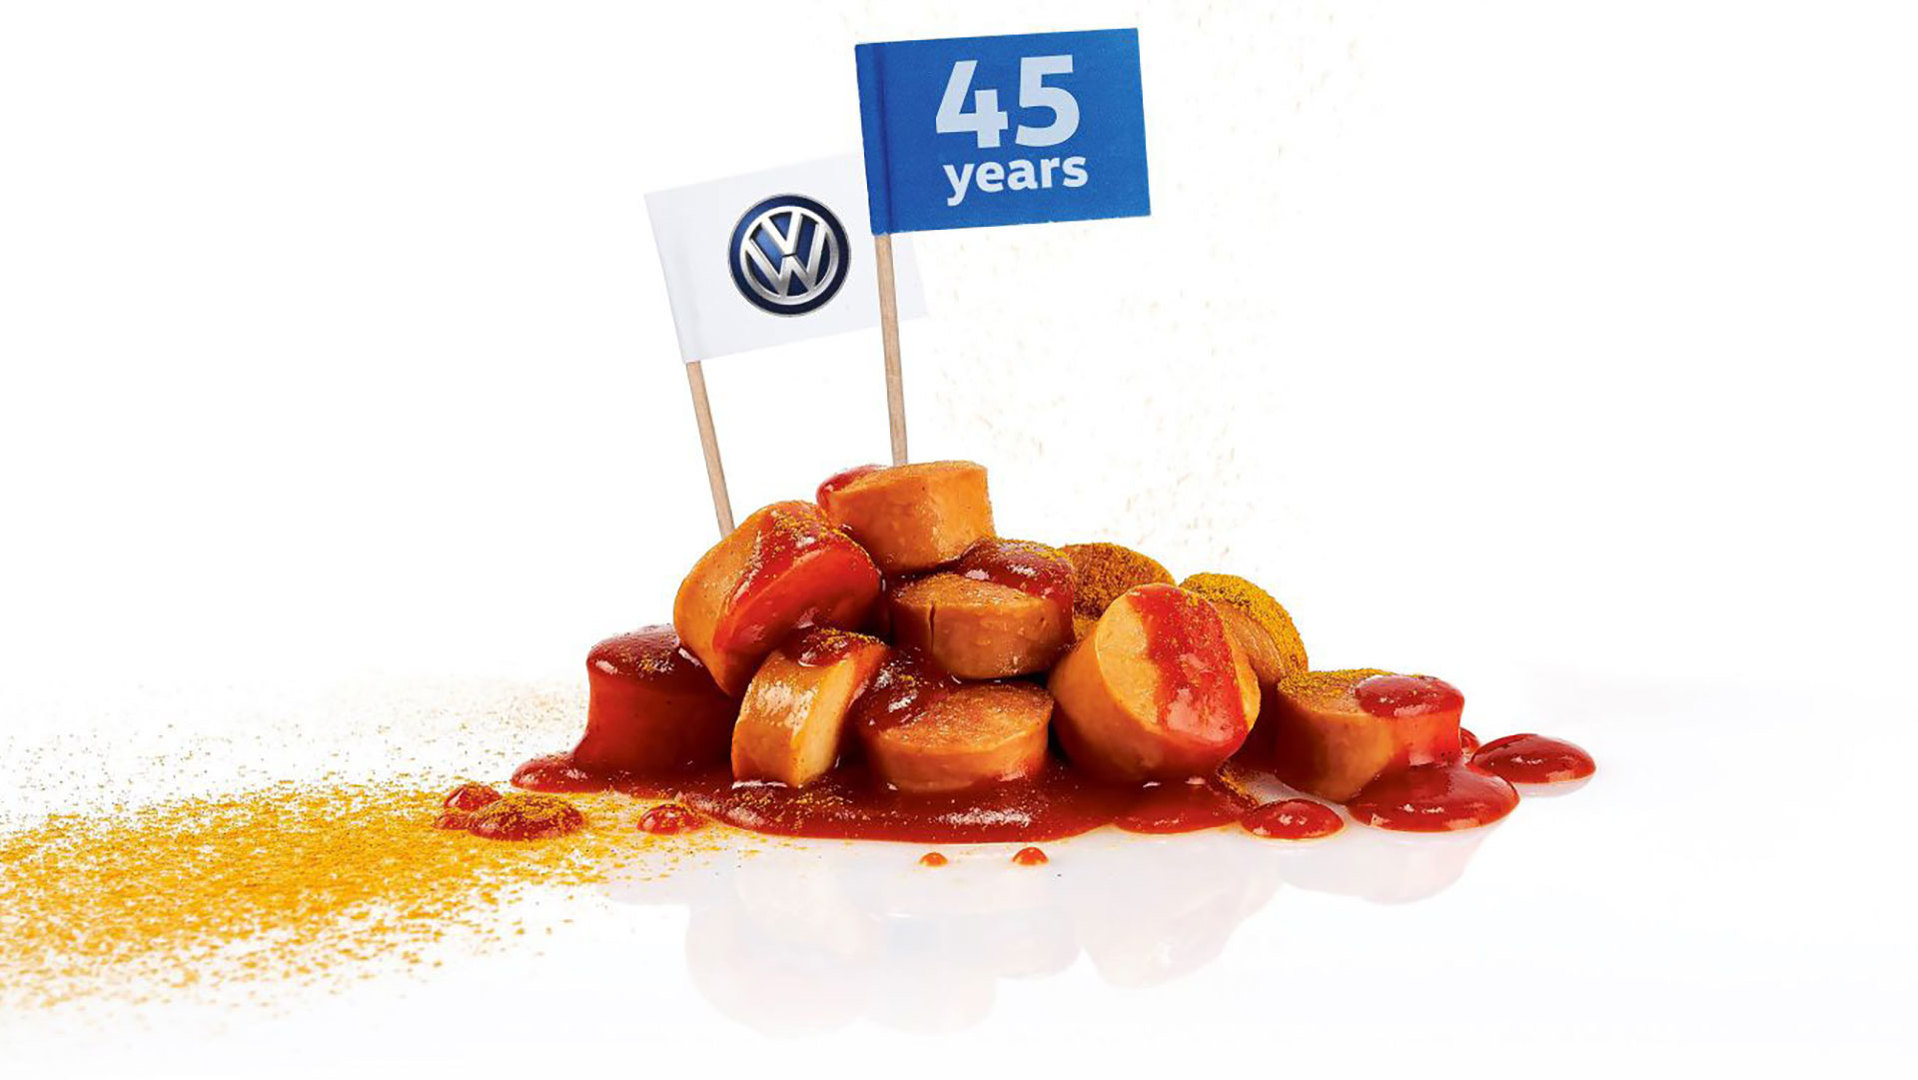 Once Again, Volkswagen's Best Seller In 2019 Was ... A Sausage